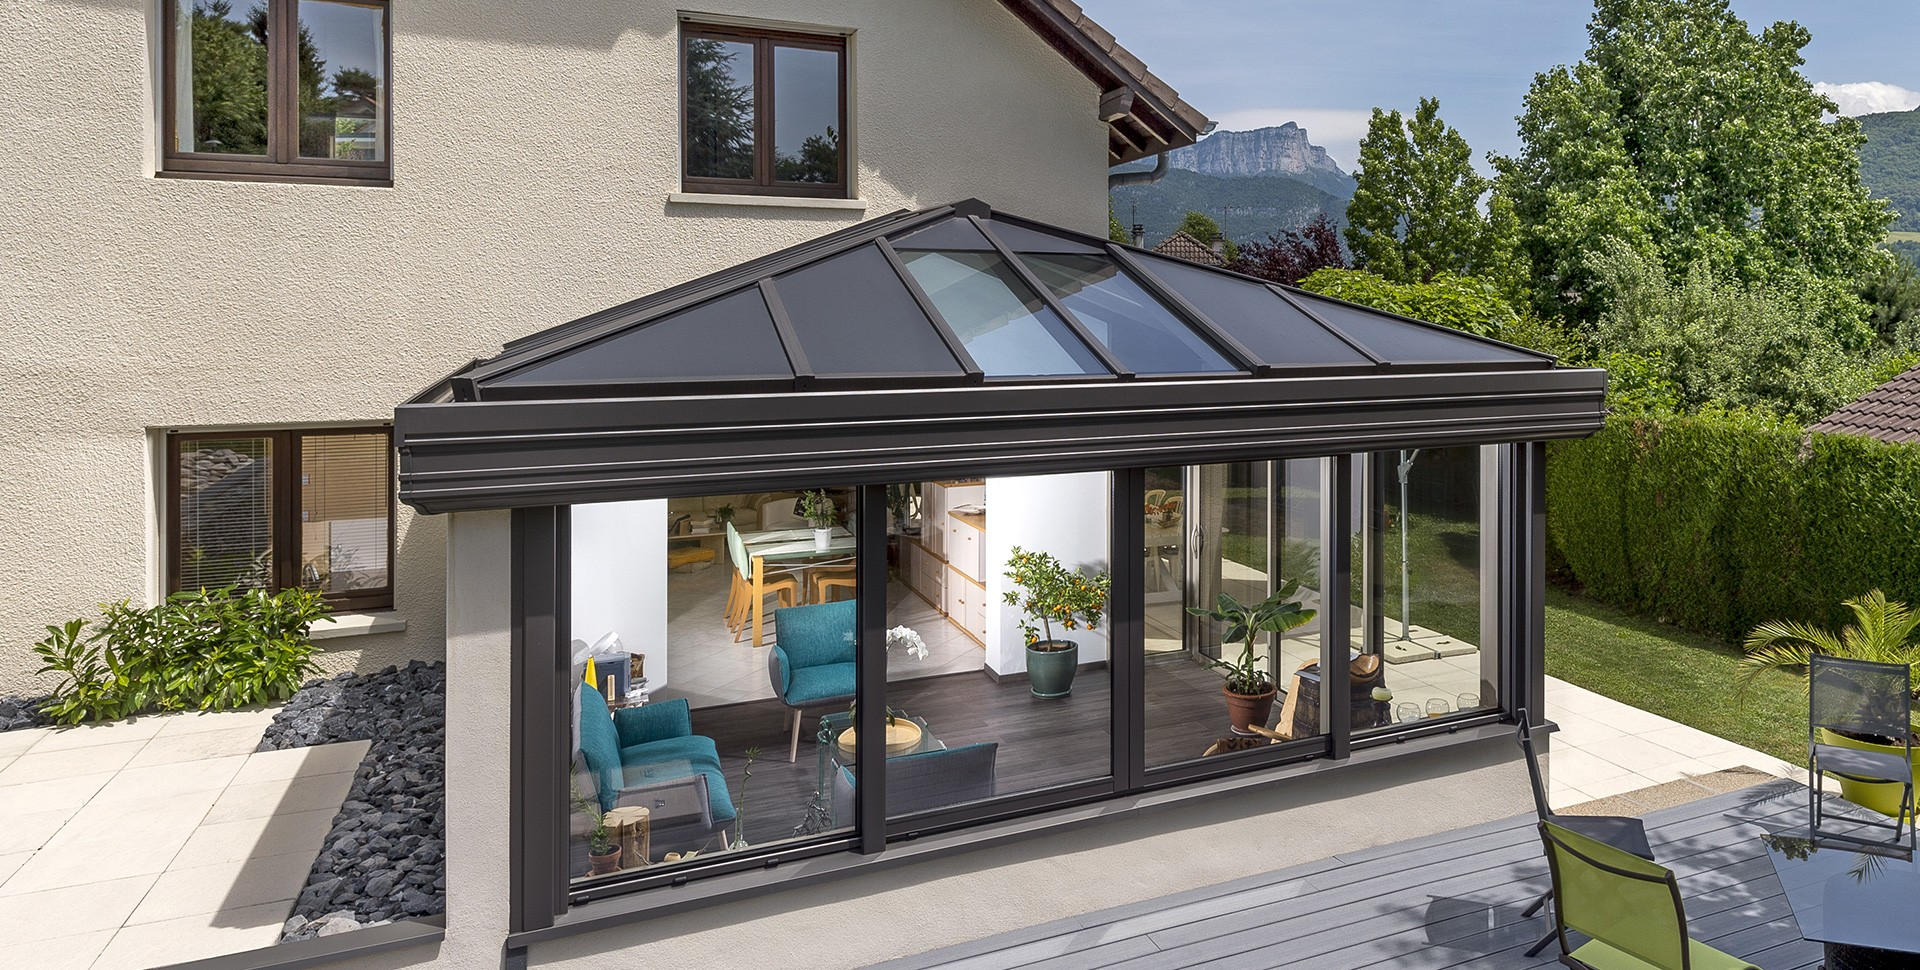 image veranda aluminium good patio aluminium terrace covers roof with image veranda aluminium. Black Bedroom Furniture Sets. Home Design Ideas